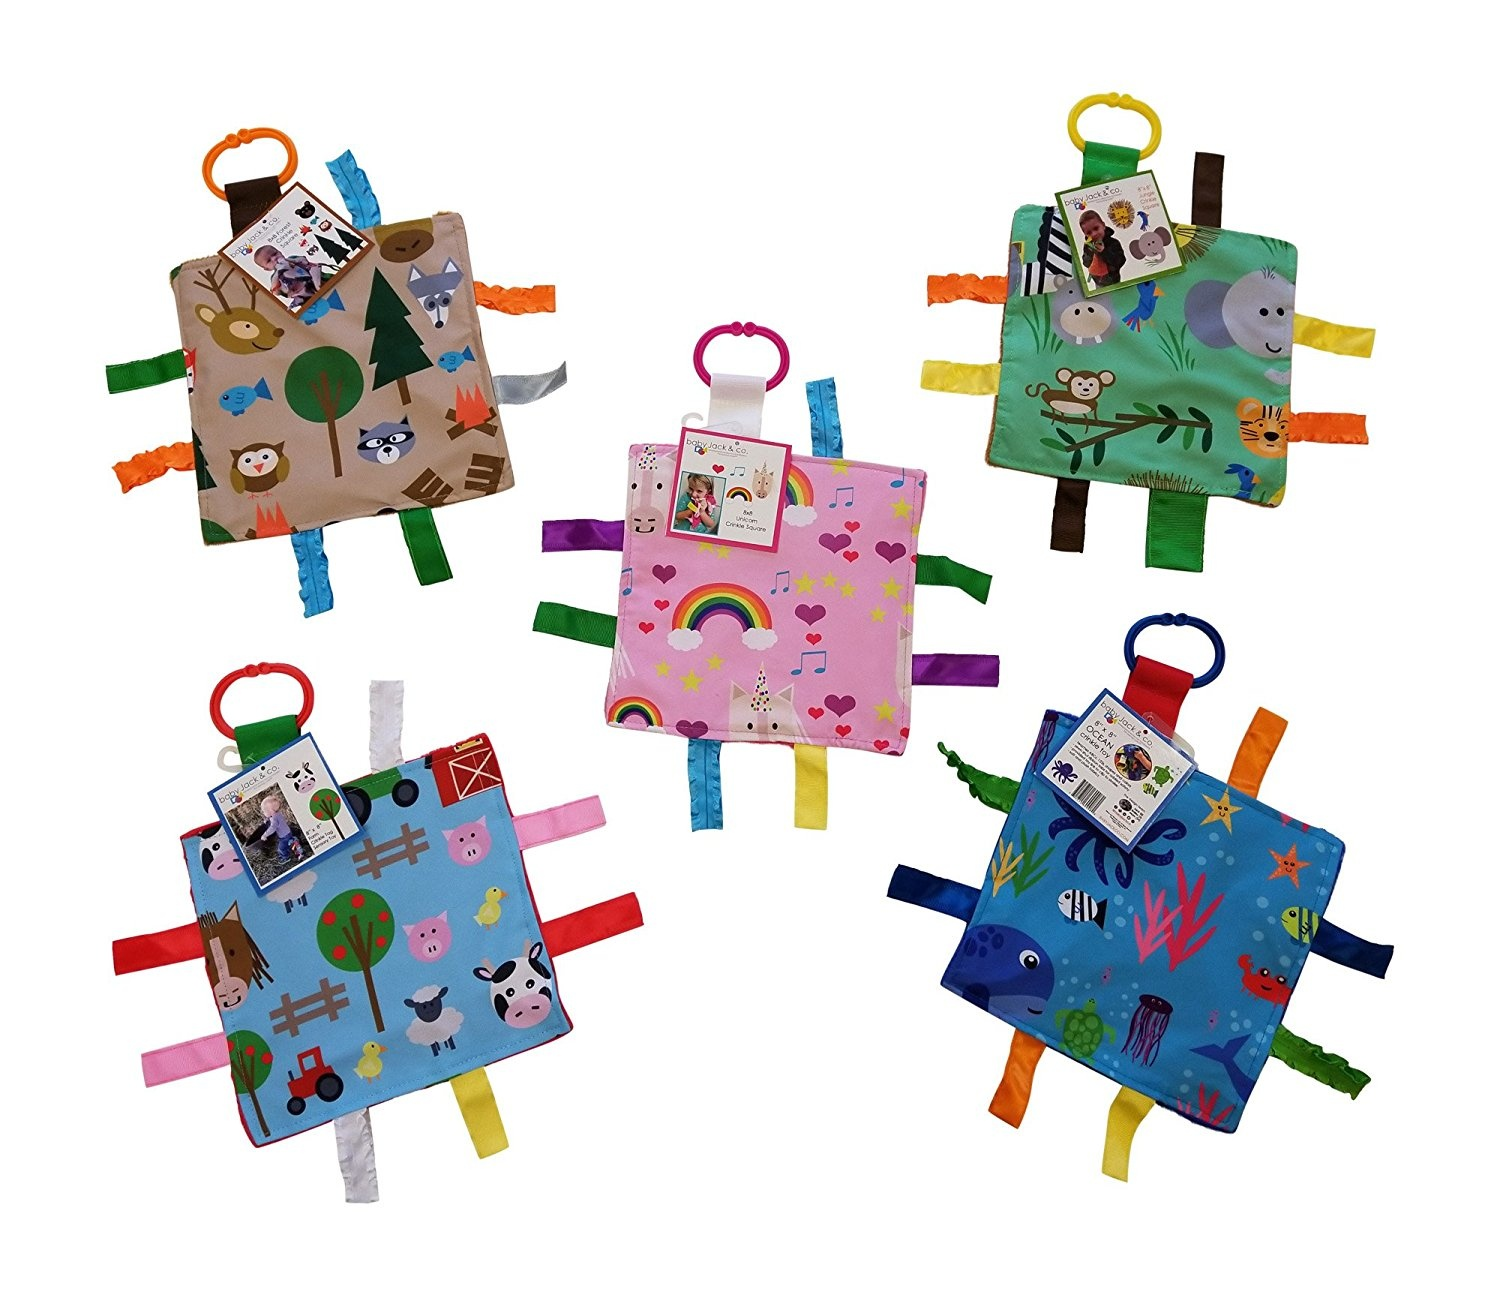 Farm Friends Baby Jack /& Co Baby Sensory Crinkle /& Teething Square Lovey Toy with Closed Ribbon Tags for Increased Stimulation 8X8